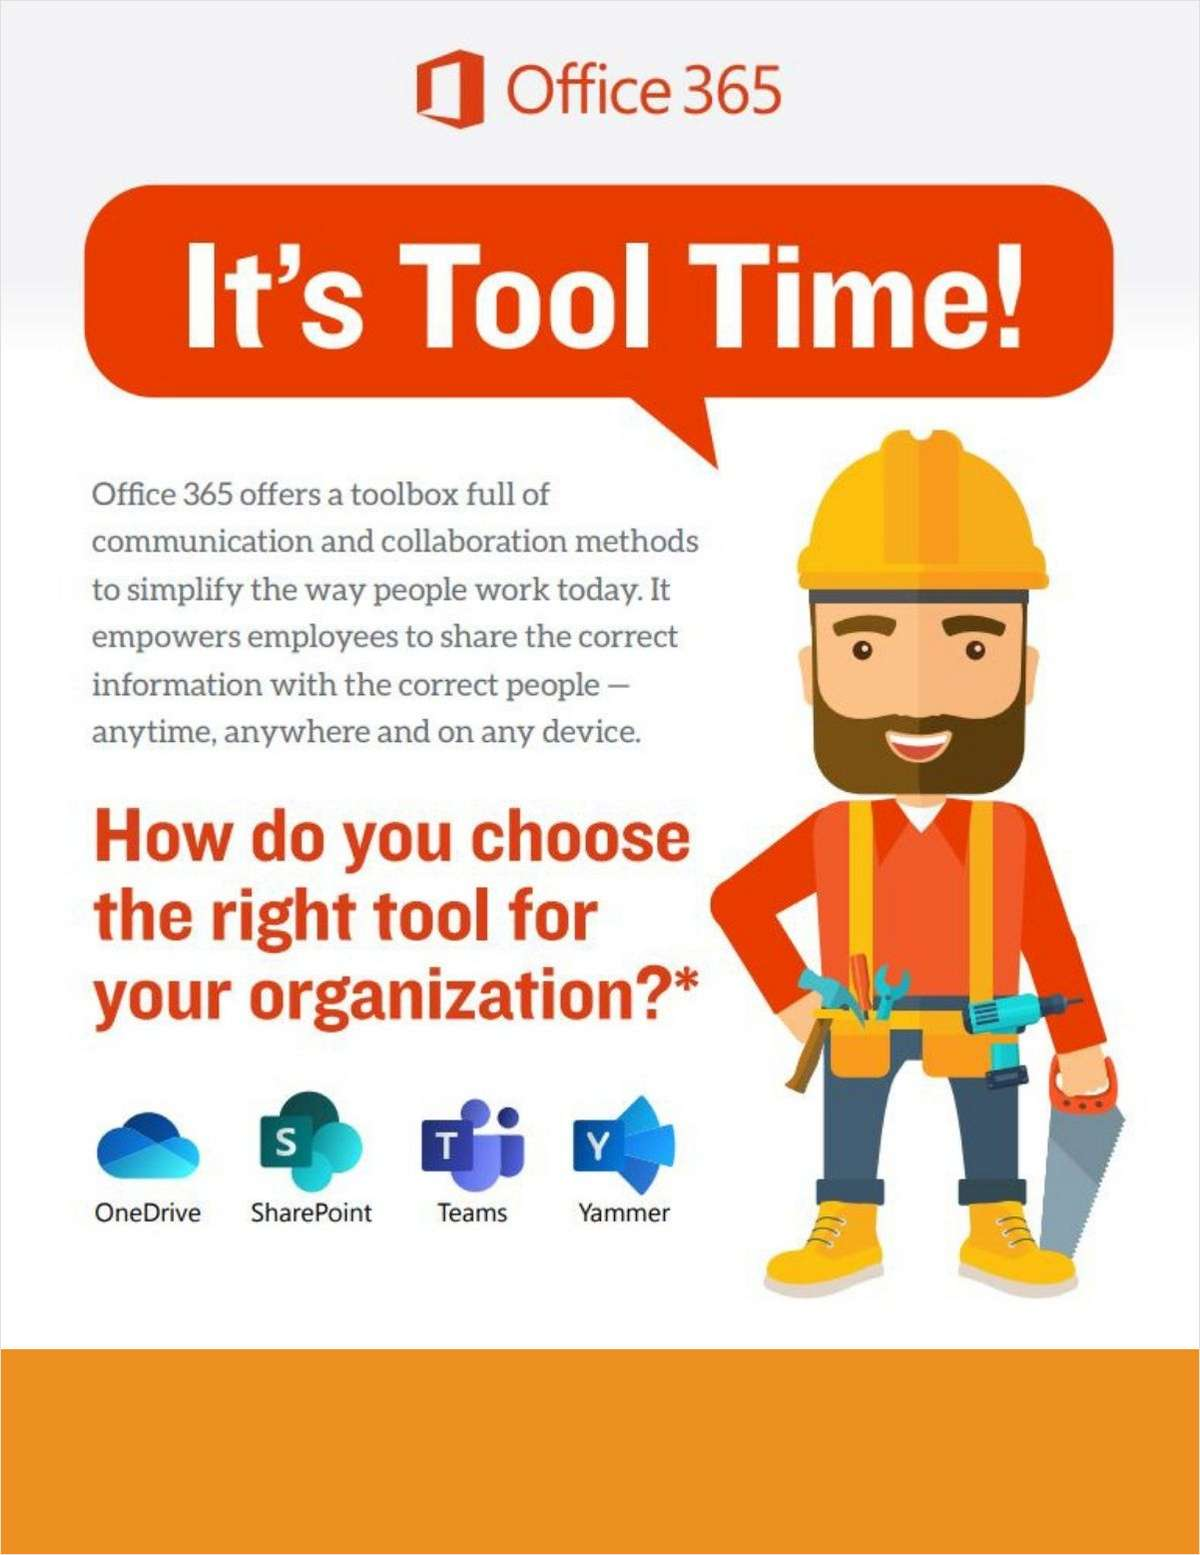 Office 365 Tool Time